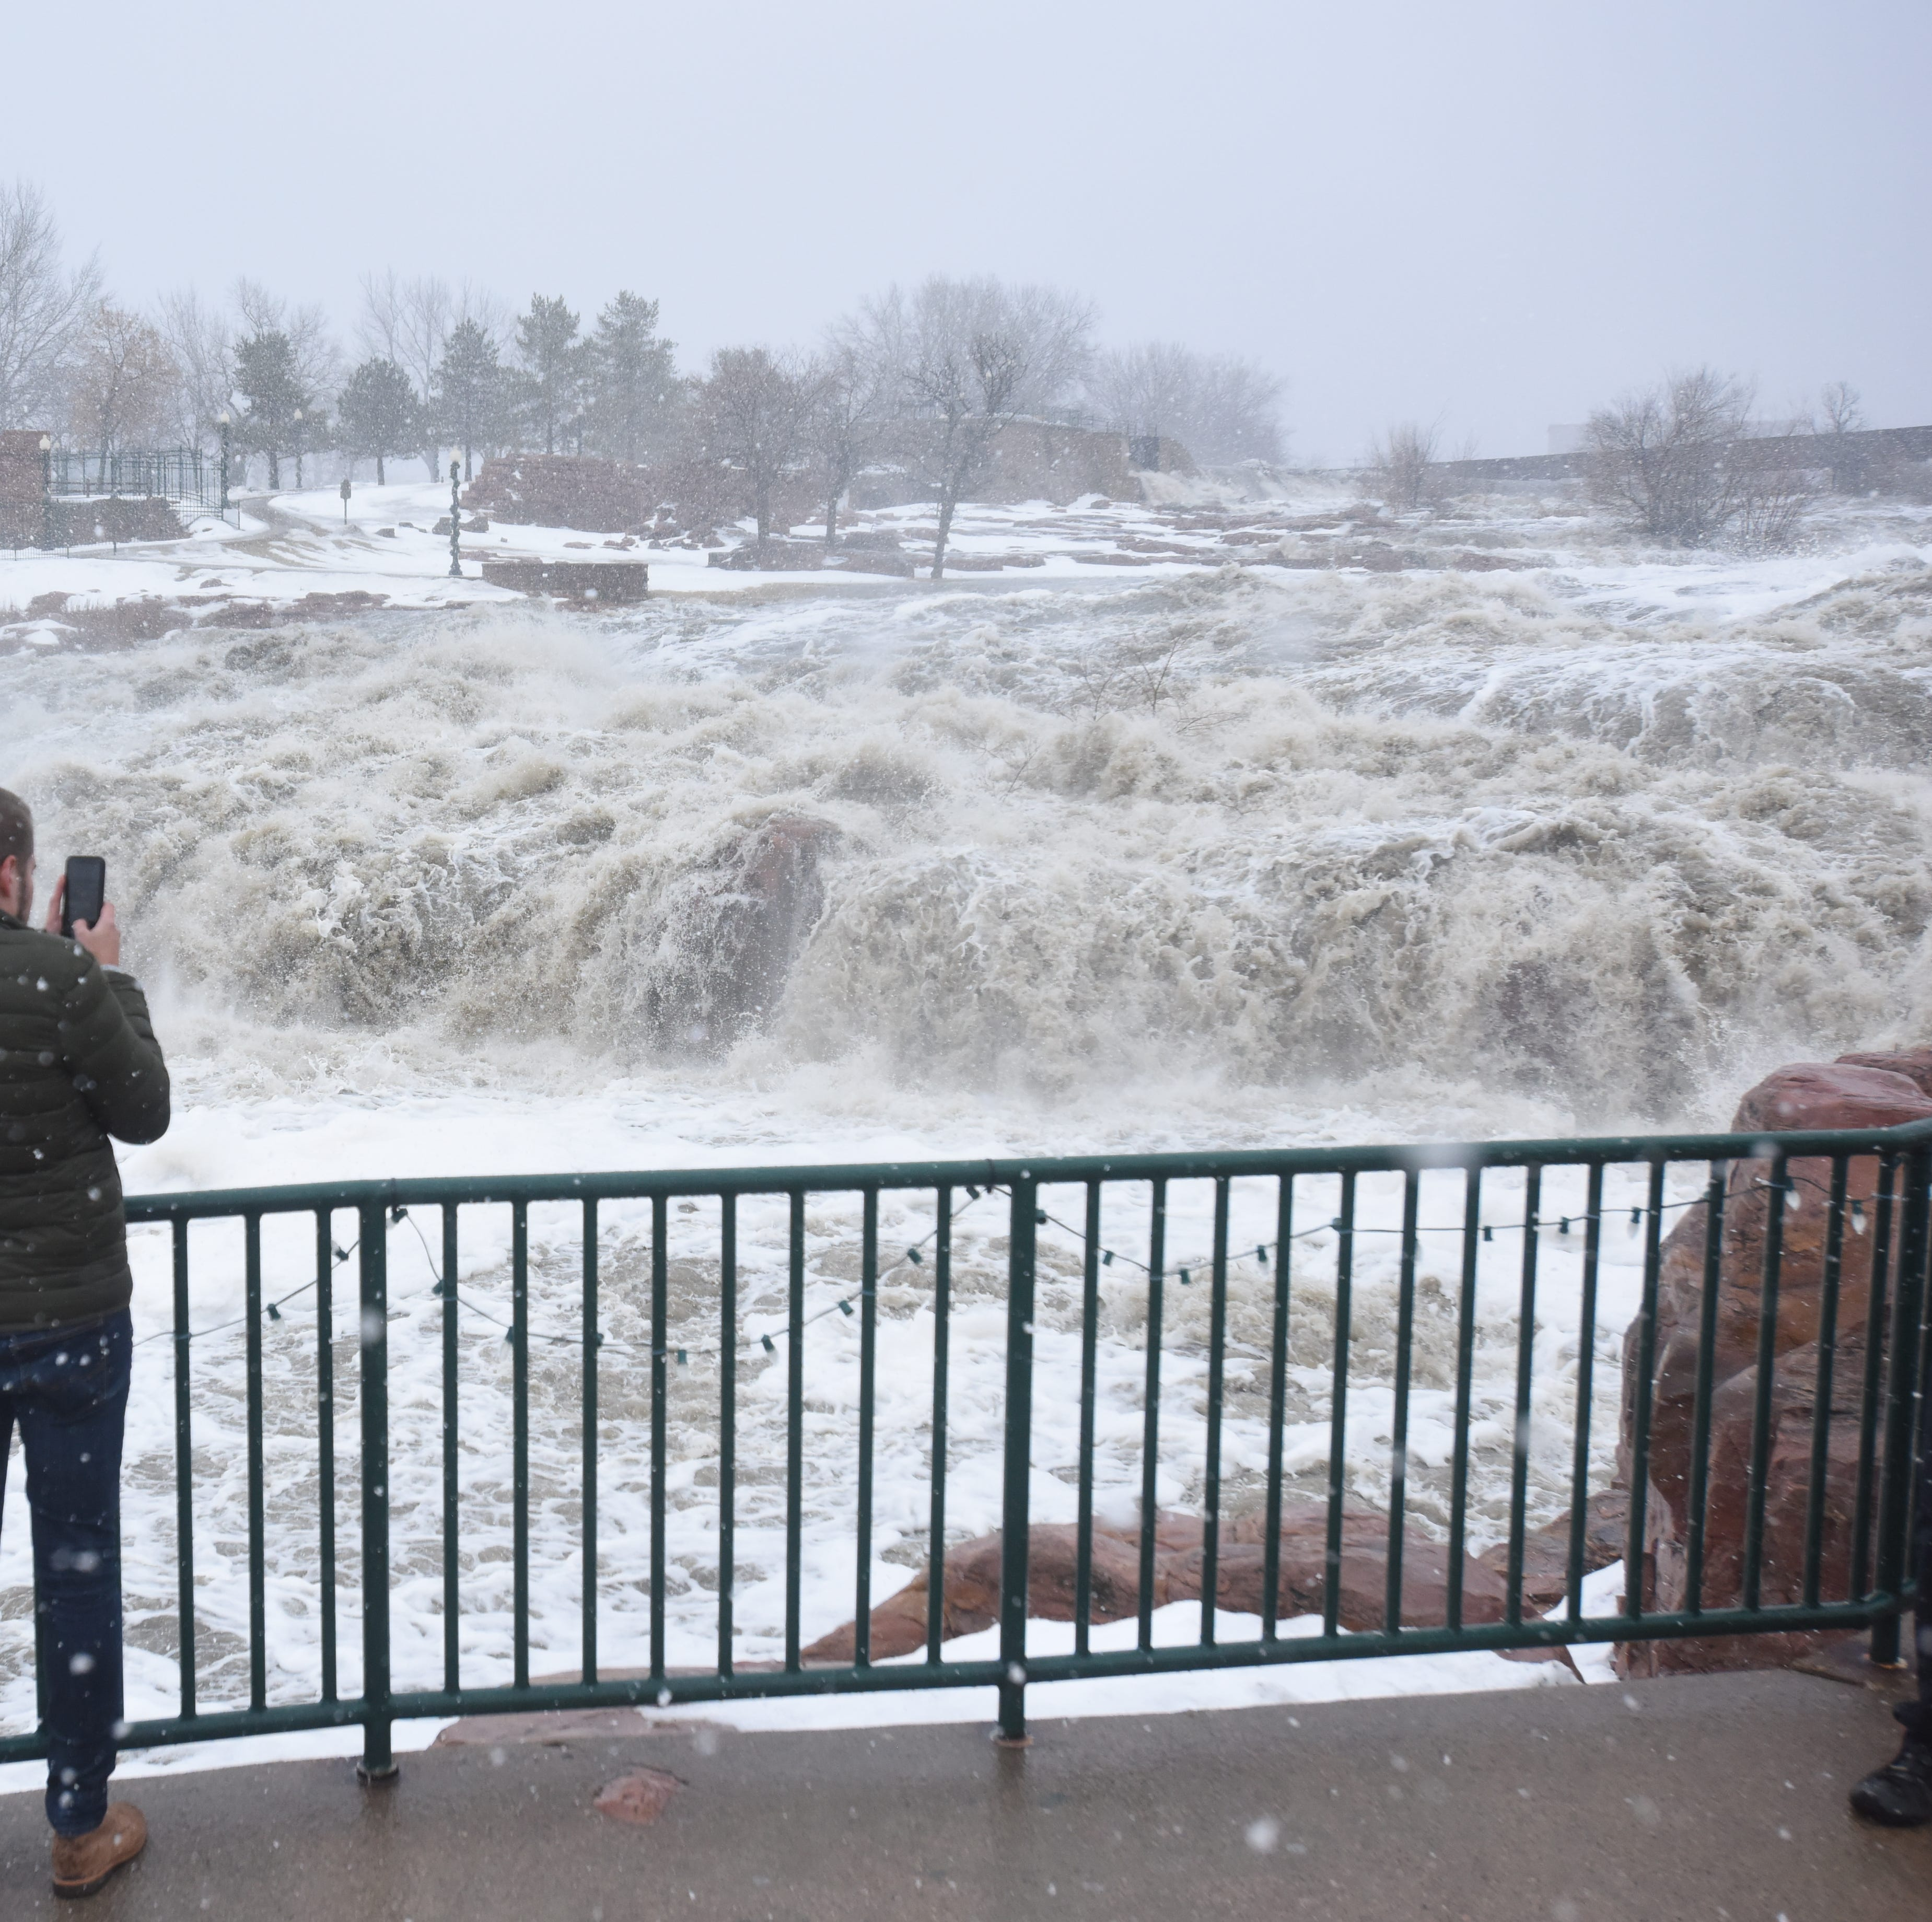 How many people have been ticketed for entering flooded parks?